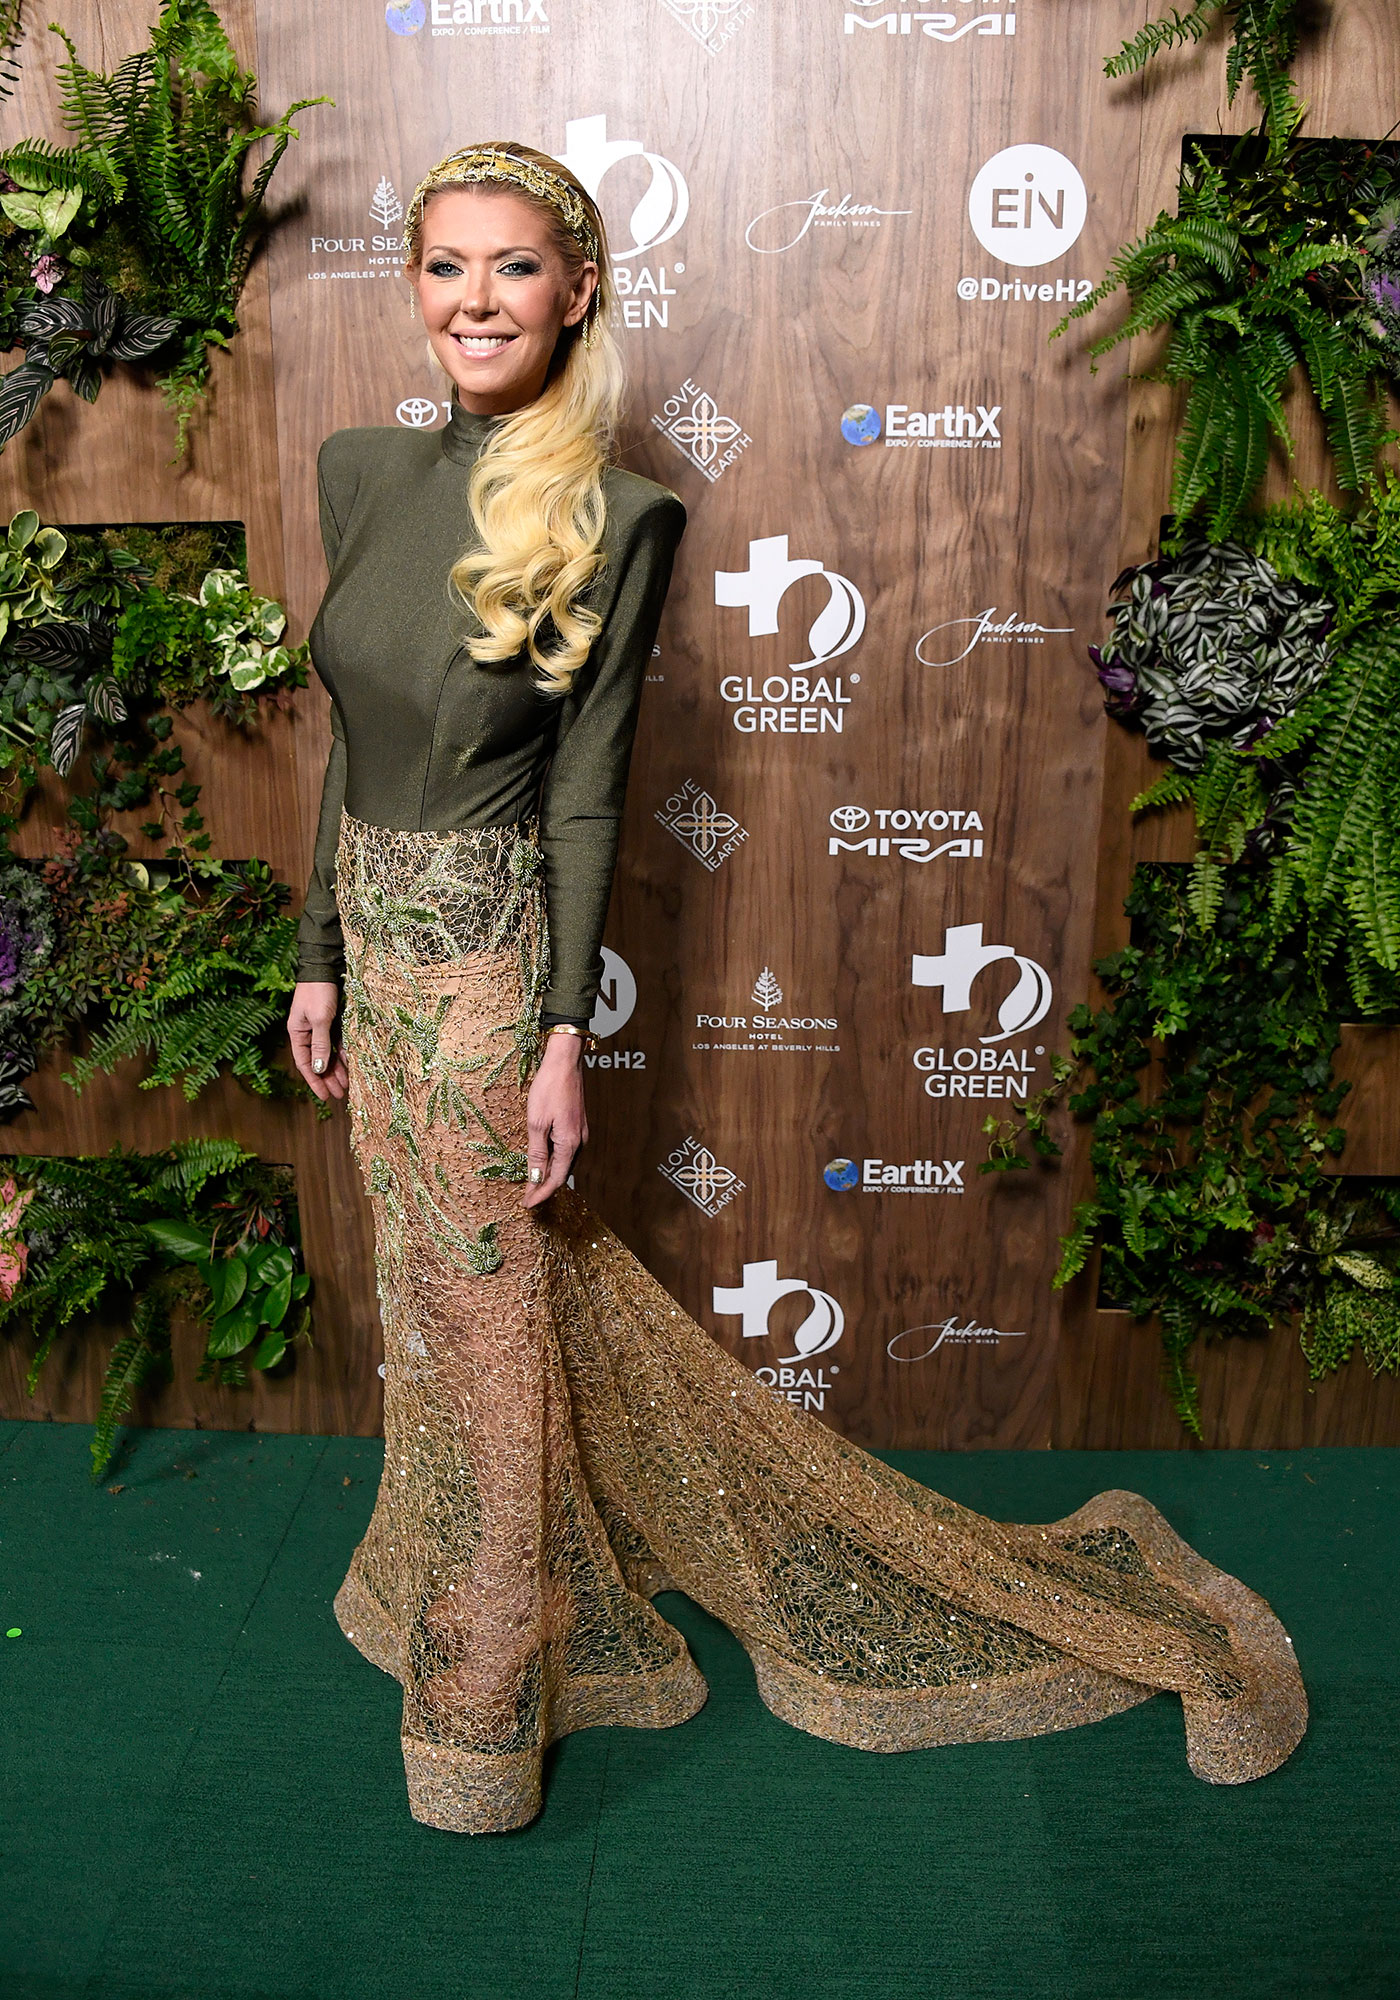 Tara Reid: Seann William Scott and Jason Biggs Would Have to 'Get Along' for 'American Pie' Sequel to Happen - Tara Reid attends the Global Green 2019 Pre-Oscar Gala at Four Seasons Hotel Los Angeles at Beverly Hills on February 20, 2019 in Los Angeles, California.